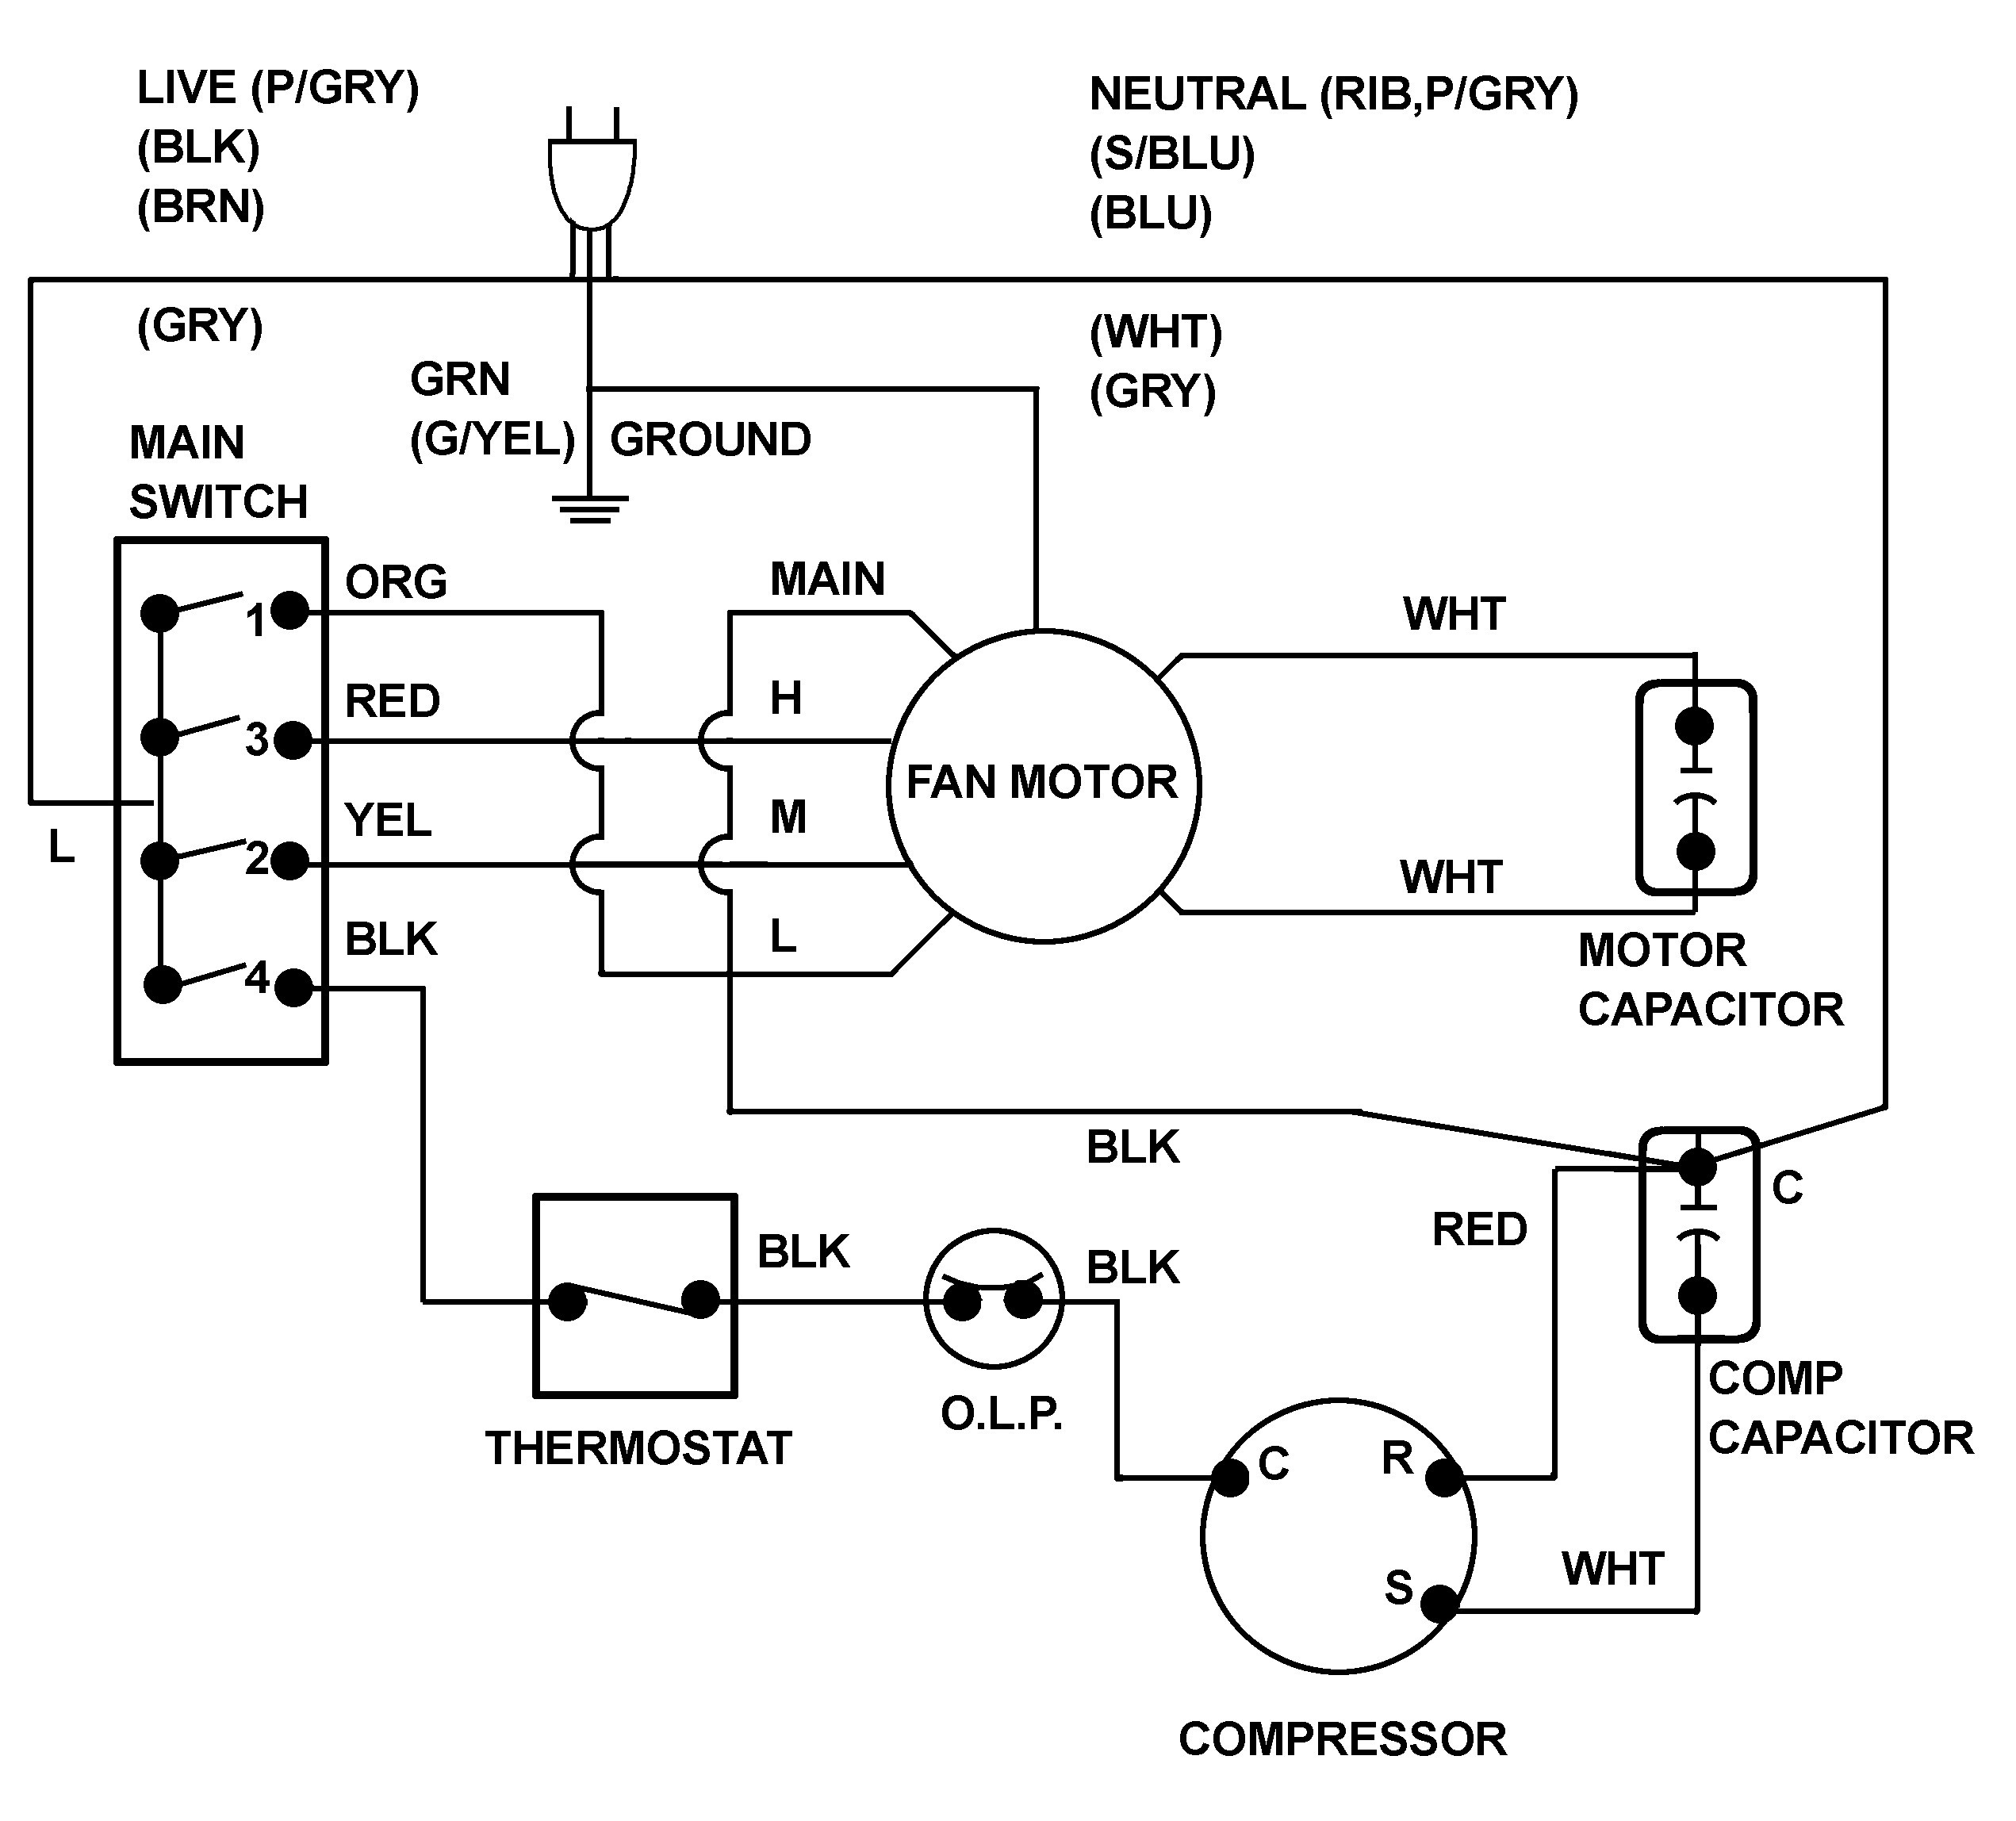 1988 Toyota Pickup Wiring Diagram Air Conditioning Wiring Diagram Zafira A Zafira A Veronapulita It